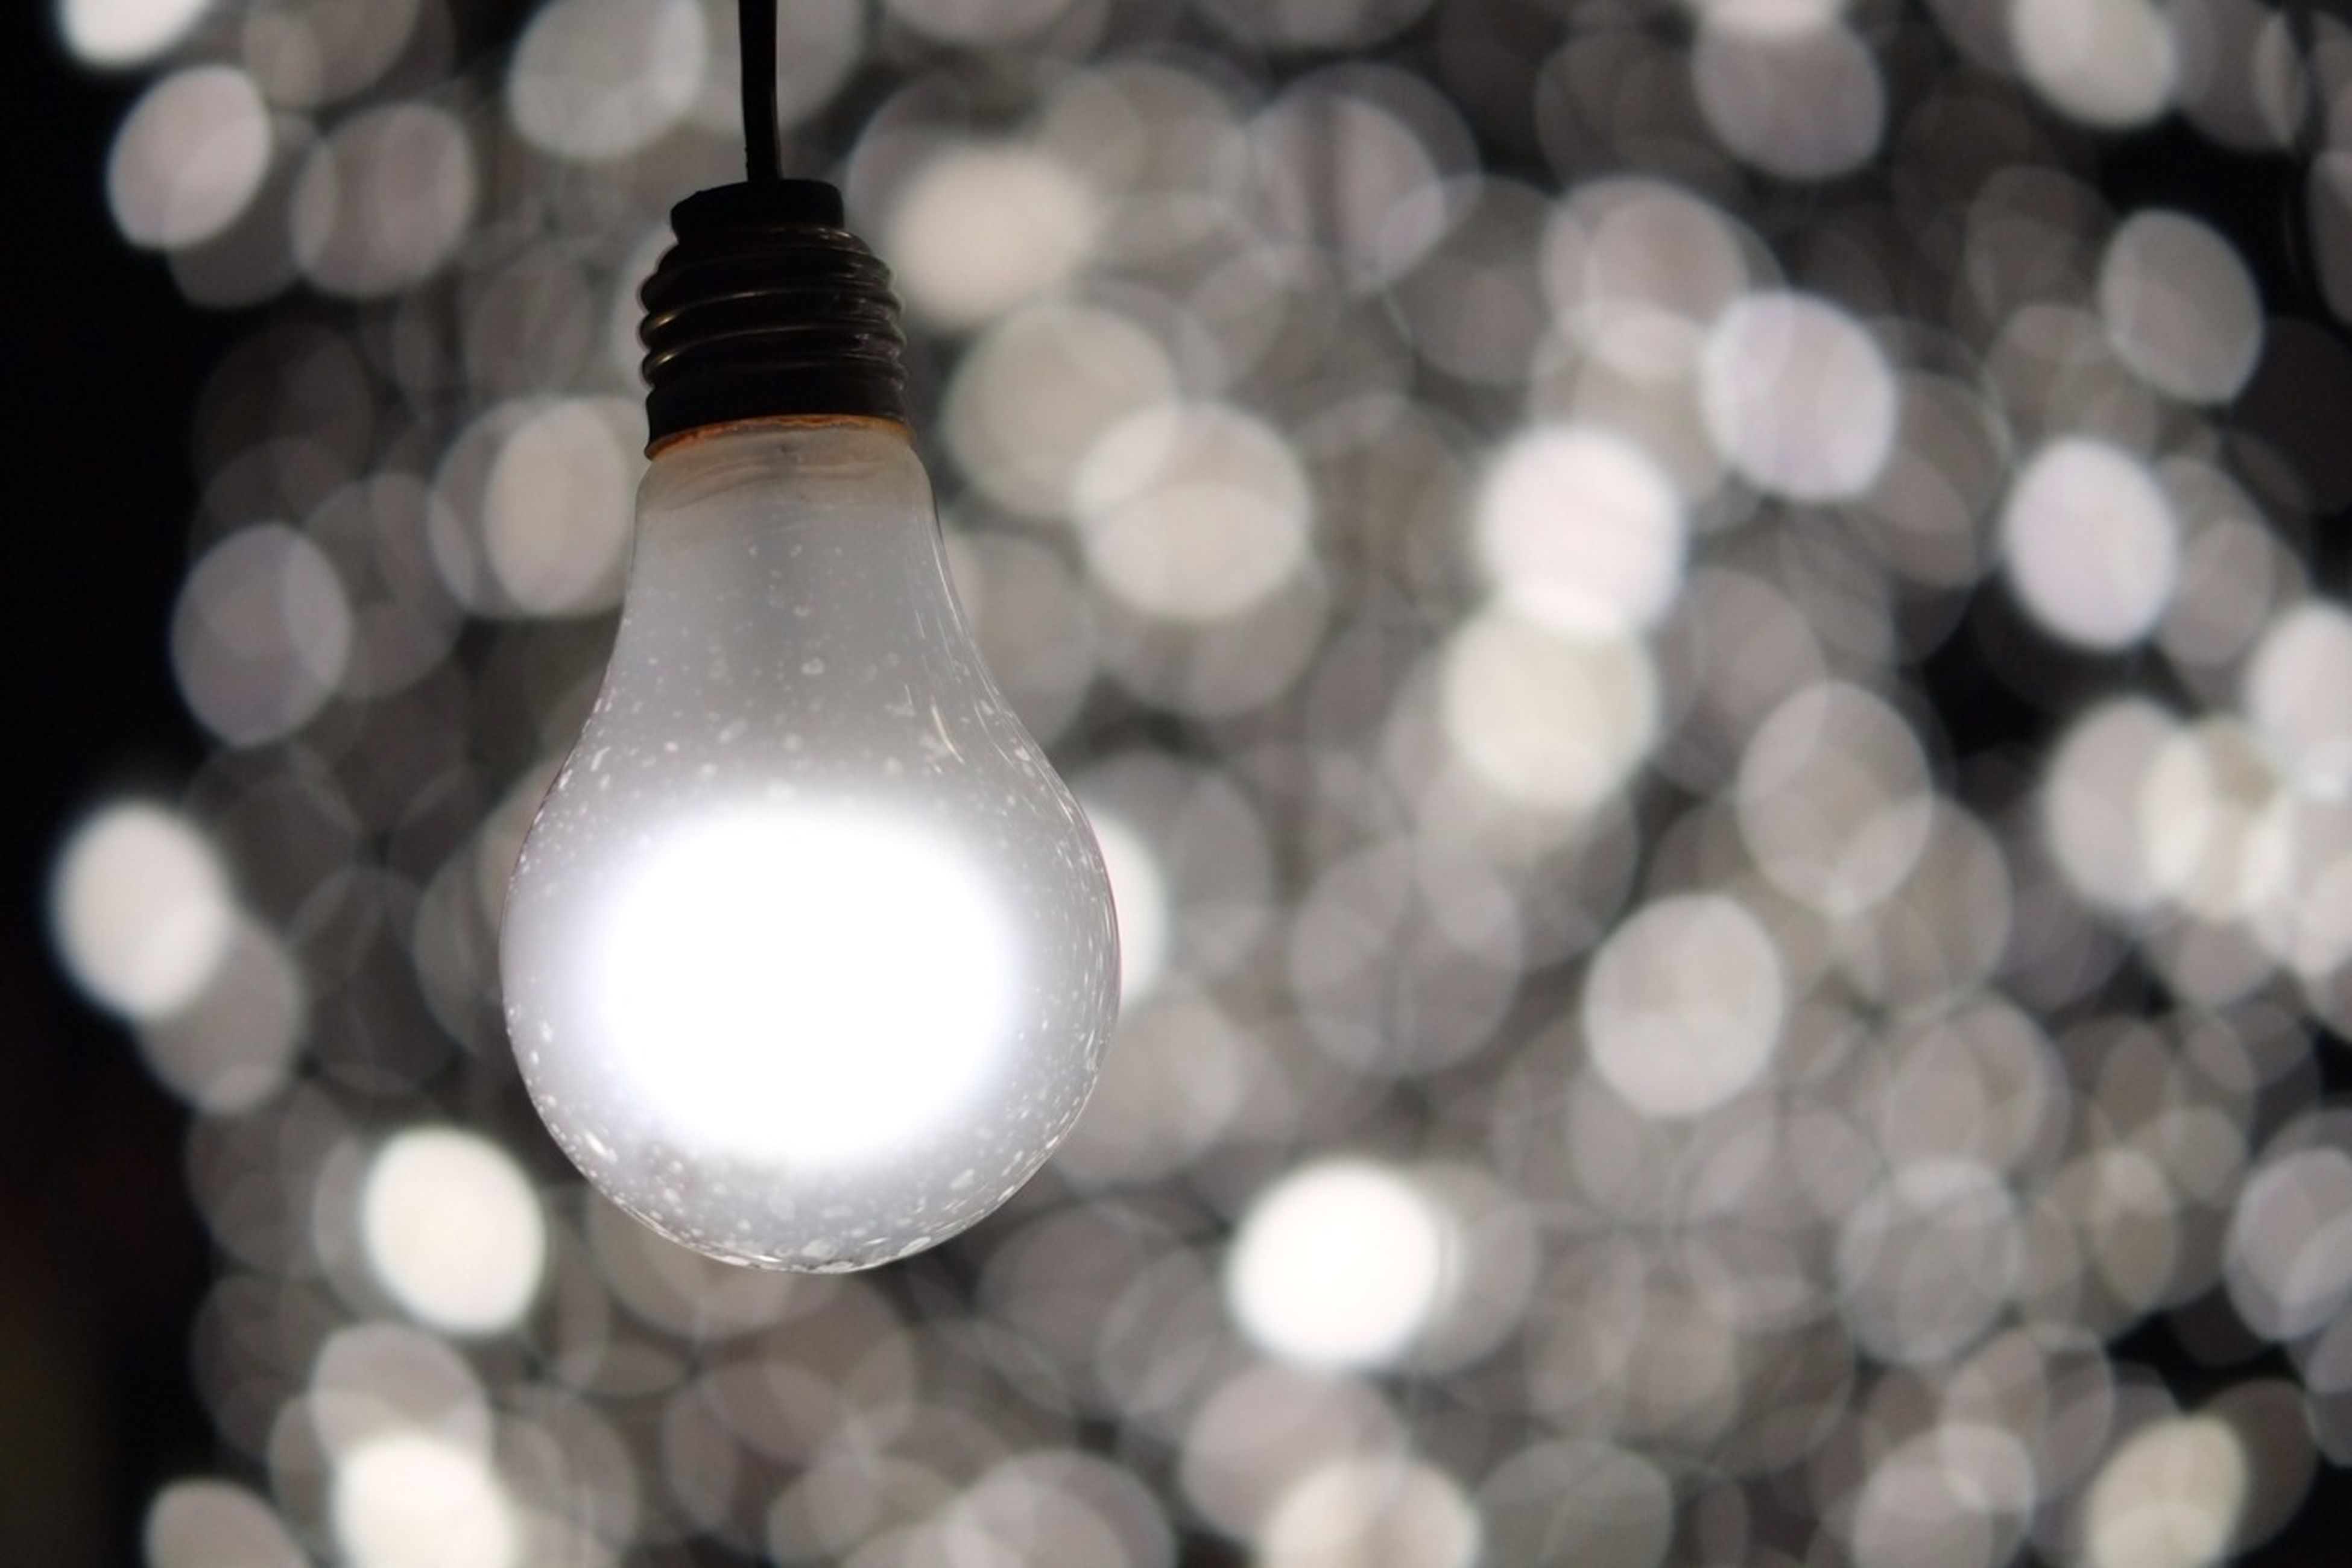 illuminated, lighting equipment, indoors, close-up, light bulb, electricity, focus on foreground, glowing, hanging, electric light, decoration, low angle view, lit, light - natural phenomenon, metal, selective focus, still life, no people, shiny, sphere